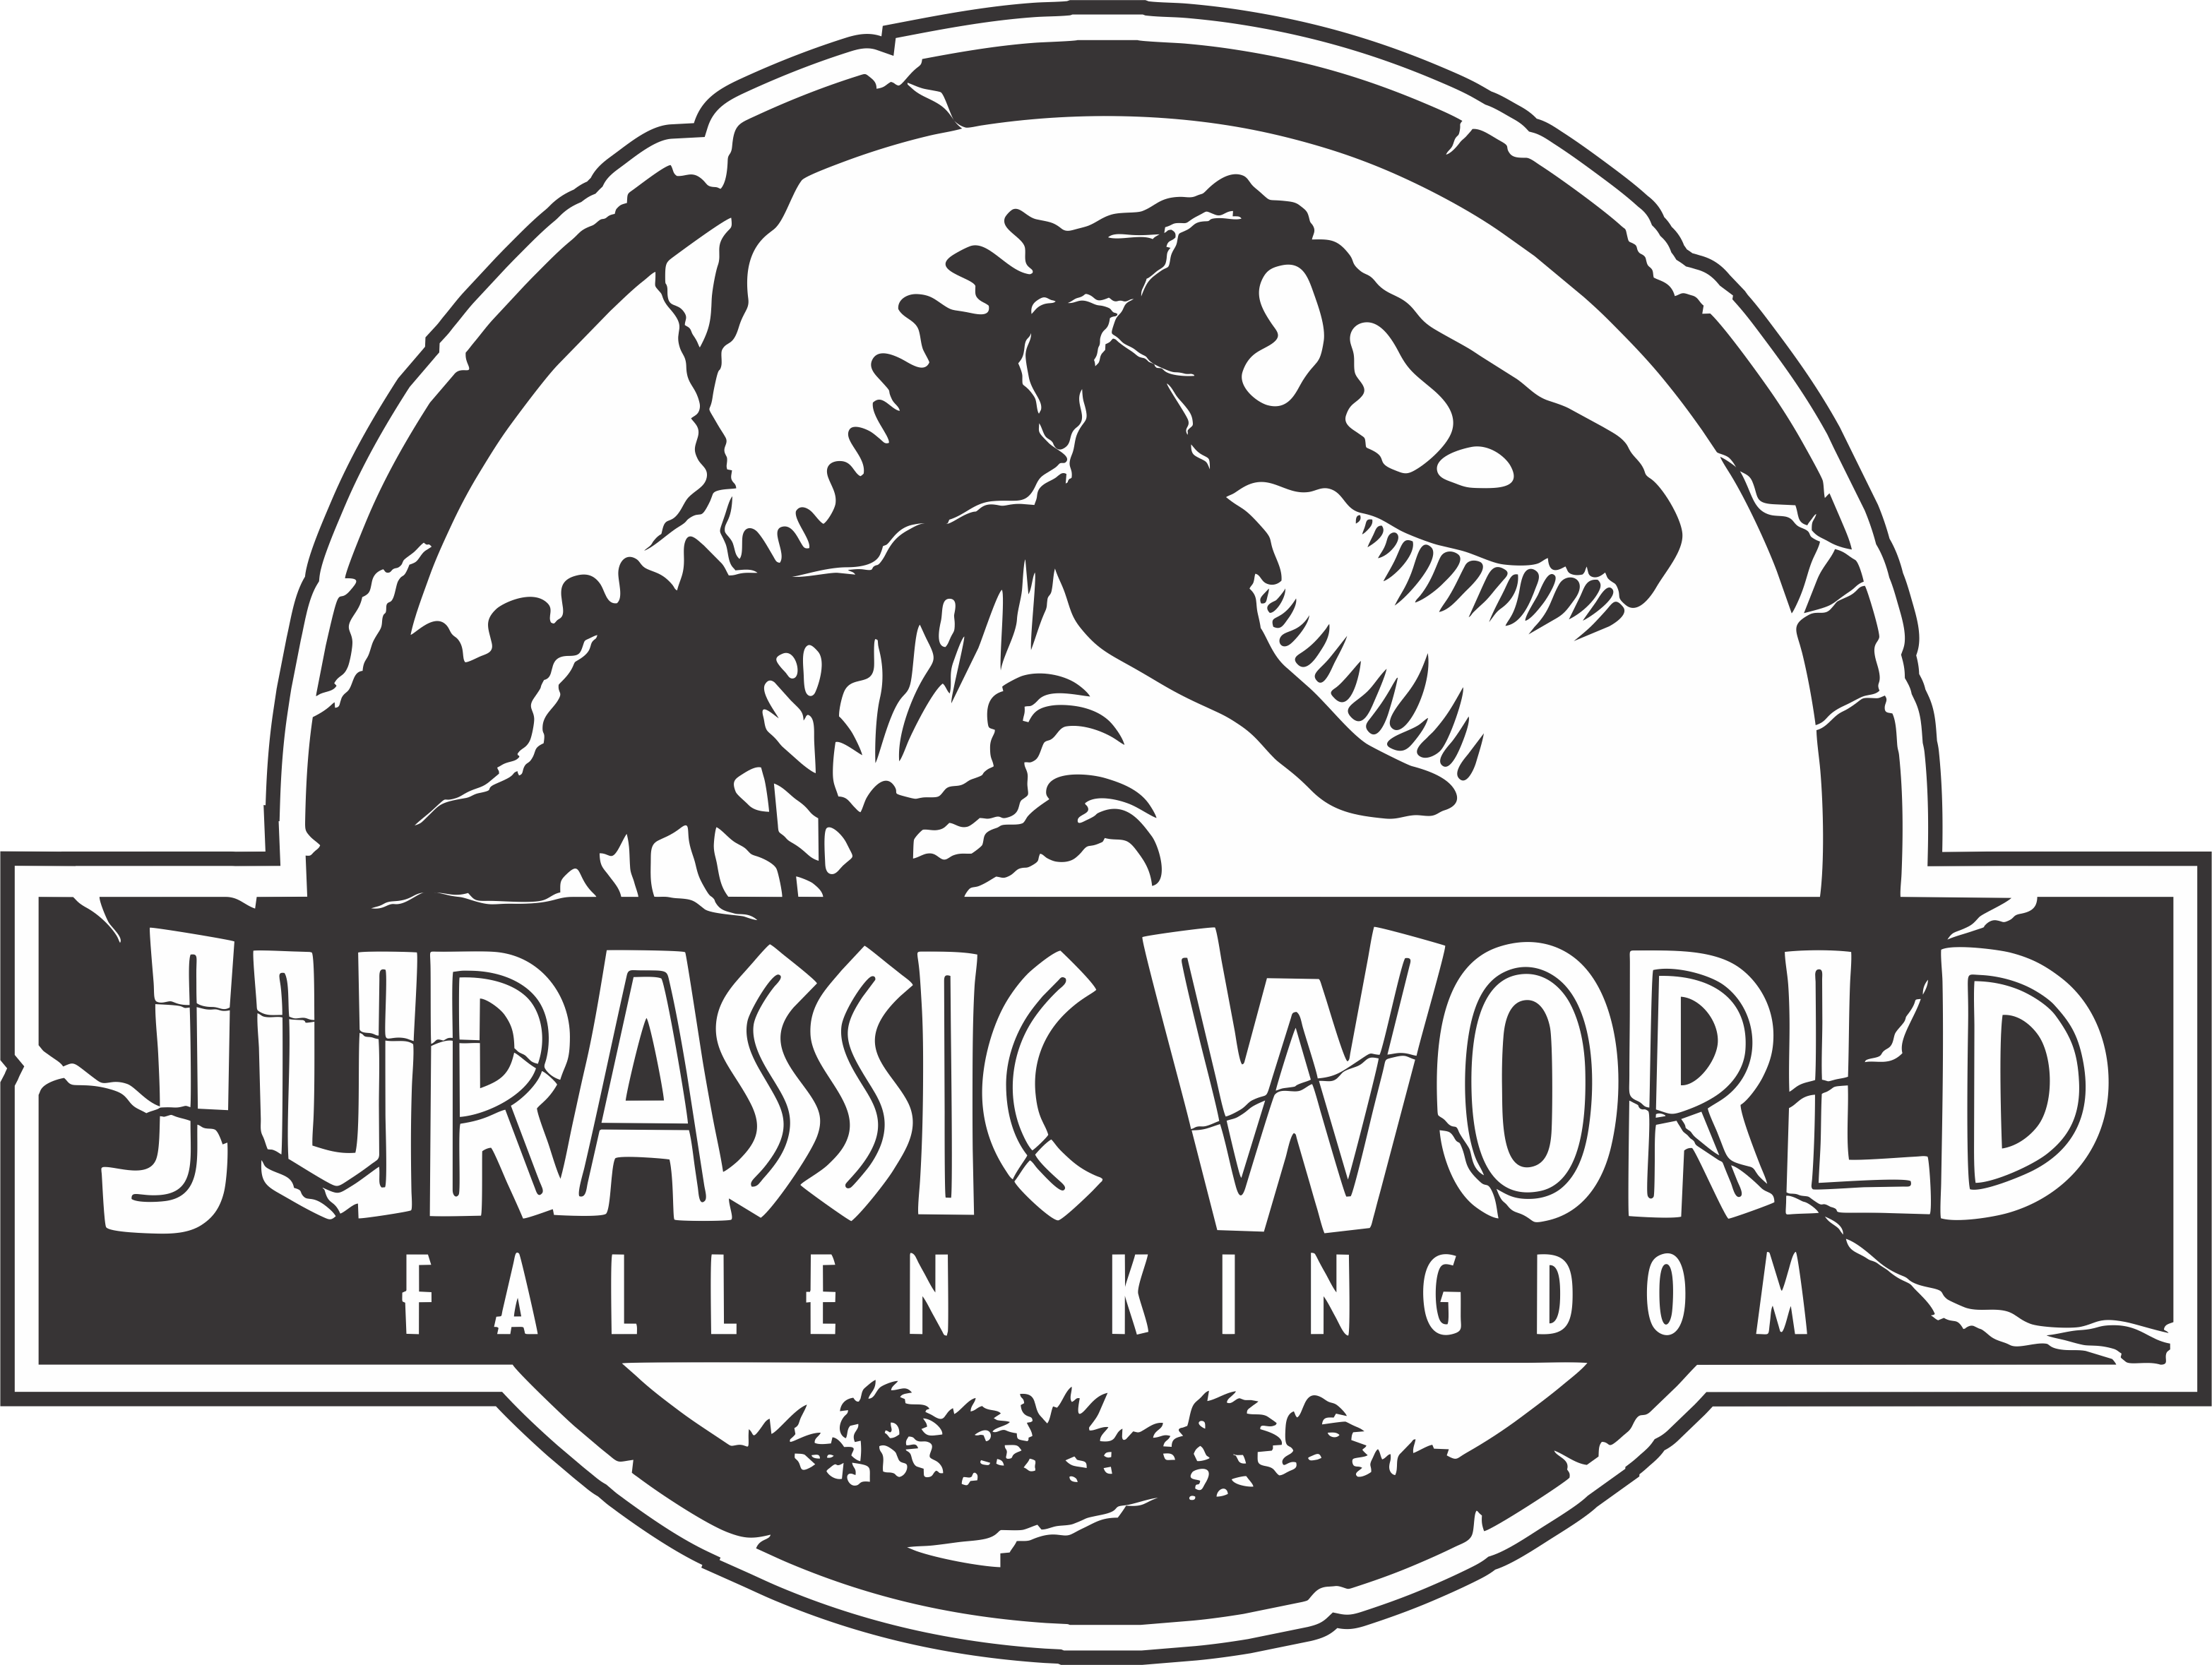 Jurassic world fallen kingdom logo png. D designs album on